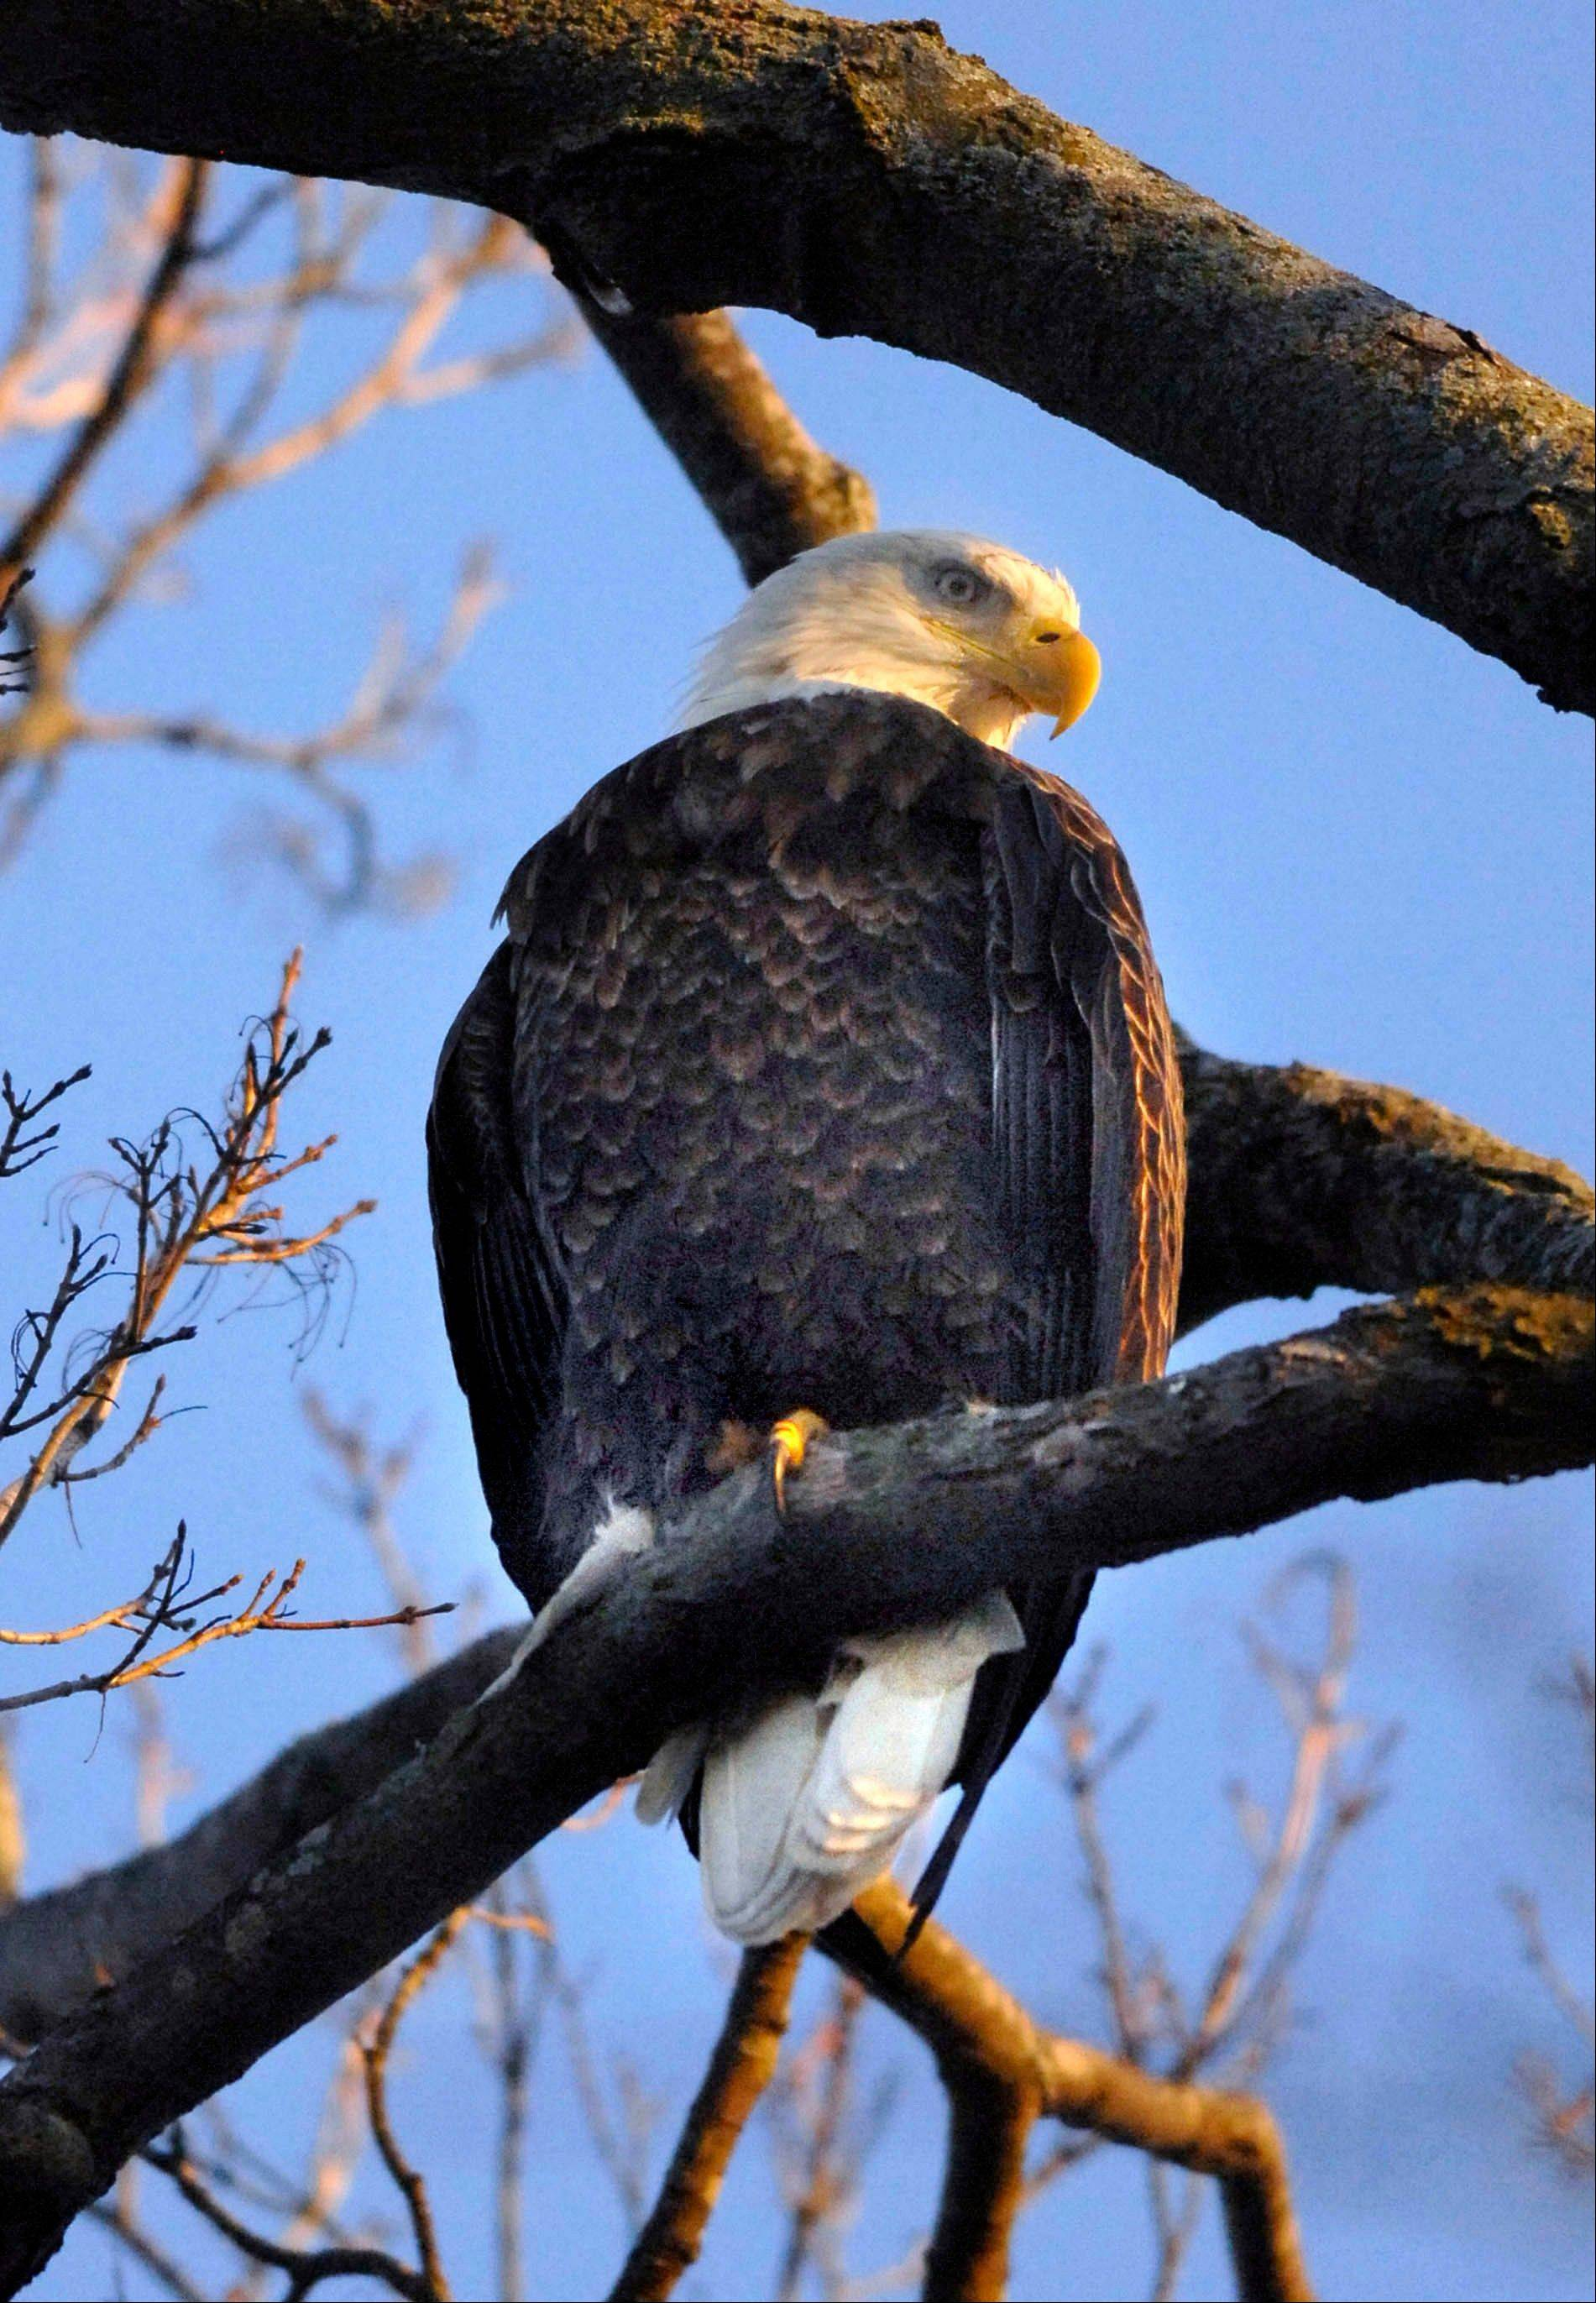 A wild bald eagle perches in a tree above Miller Park Zoo in Bloomington, Ill., on Tuesday. Zookeepers believe the eagle has taken interest in the two flightless eagles housed at the exhibit.